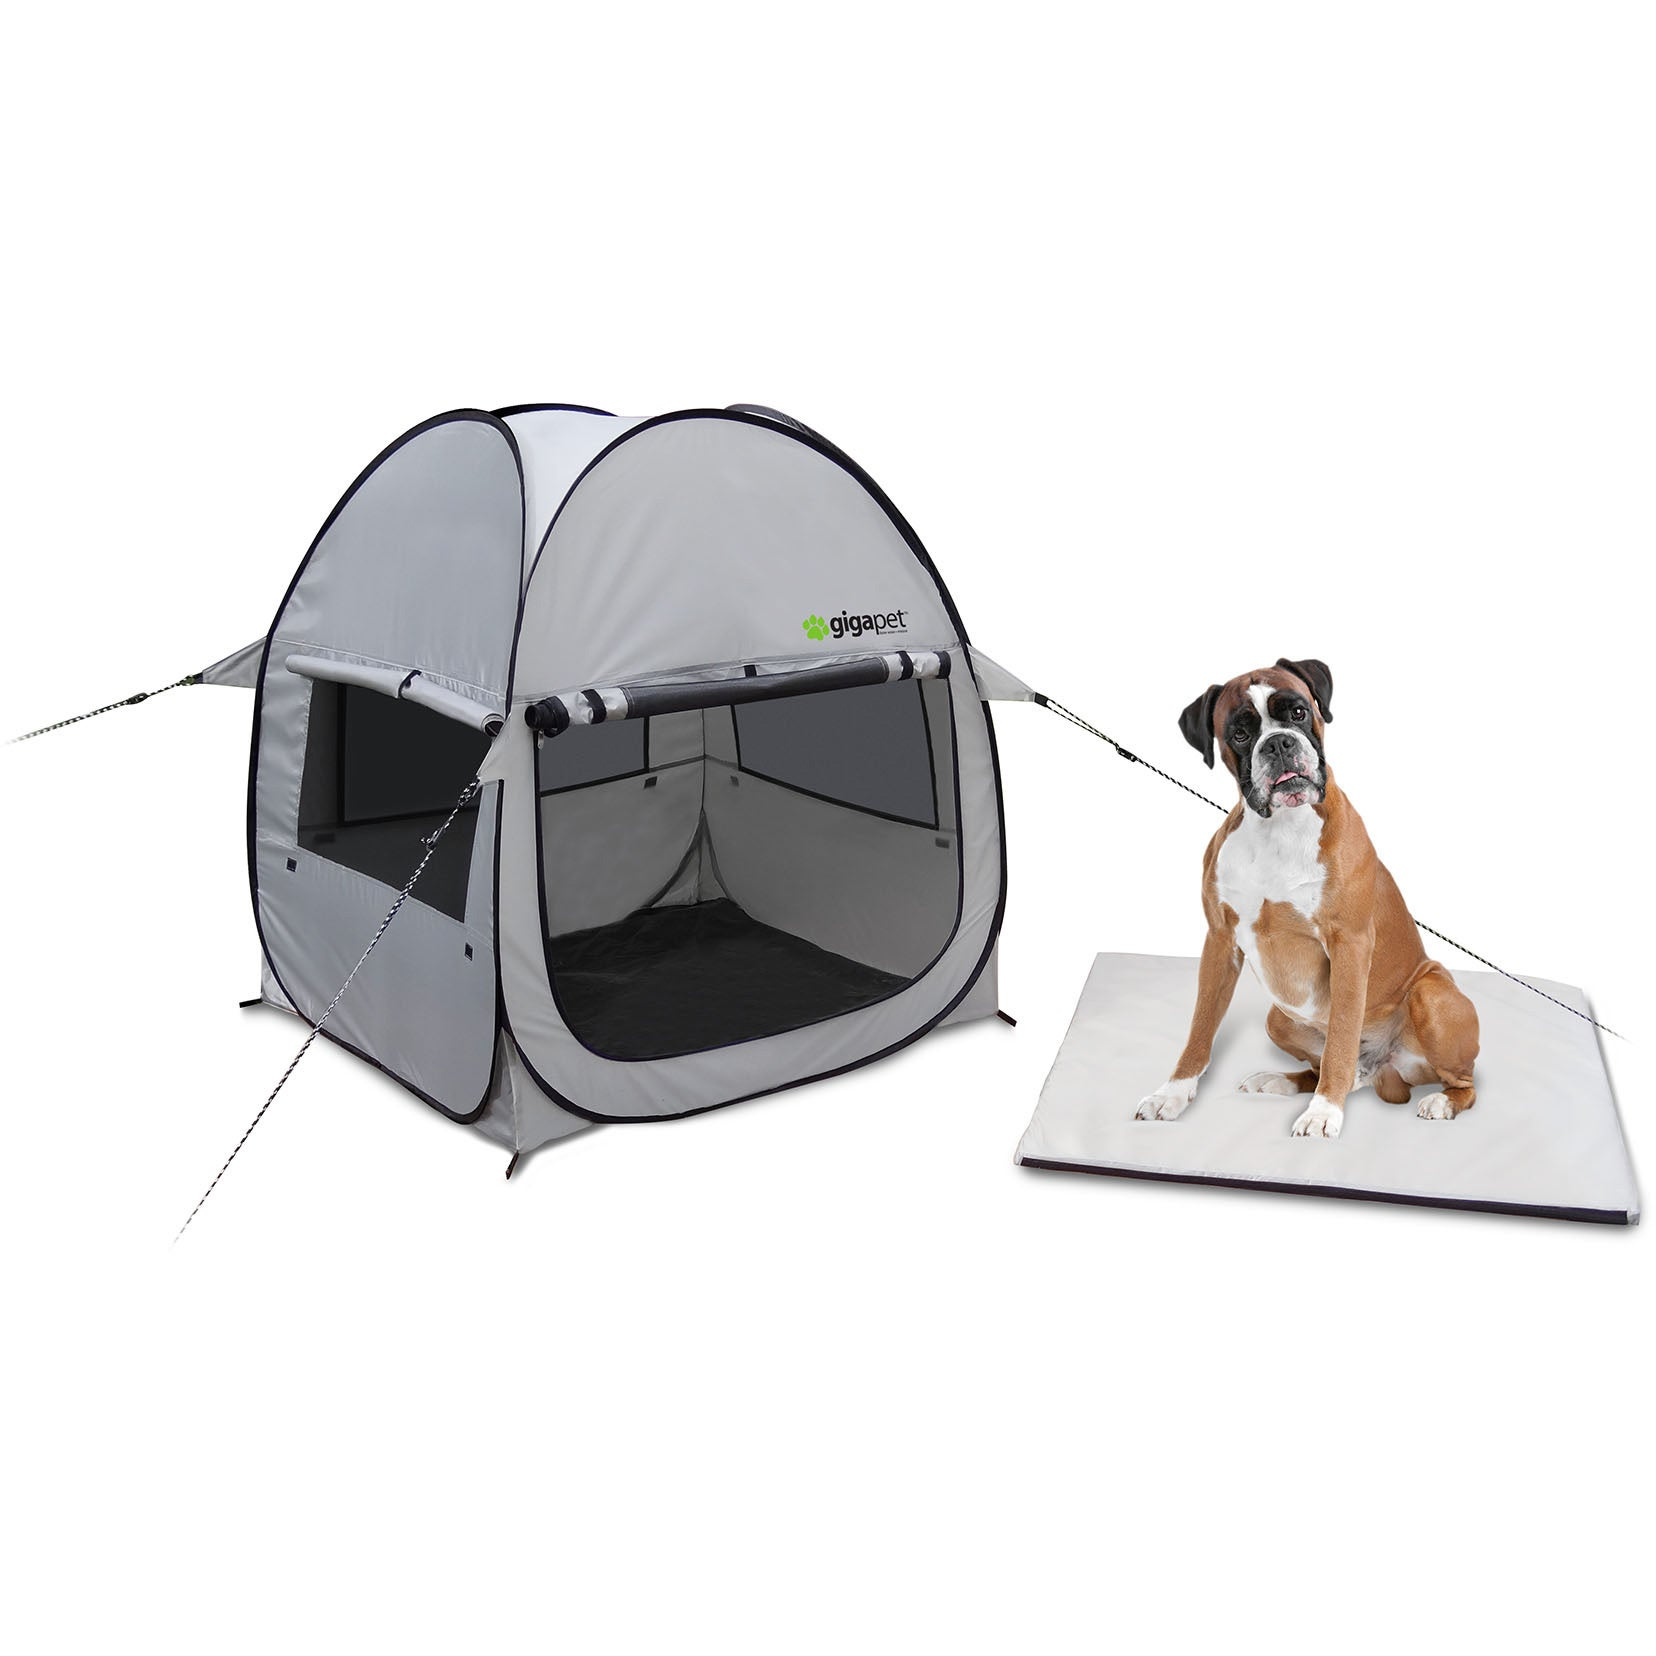 Gigatent Pop-up Pet Tent - Free Shipping On Orders Over $45 - Overstock.com - 18187397  sc 1 st  Overstock & Gigatent Pop-up Pet Tent - Free Shipping On Orders Over $45 ...